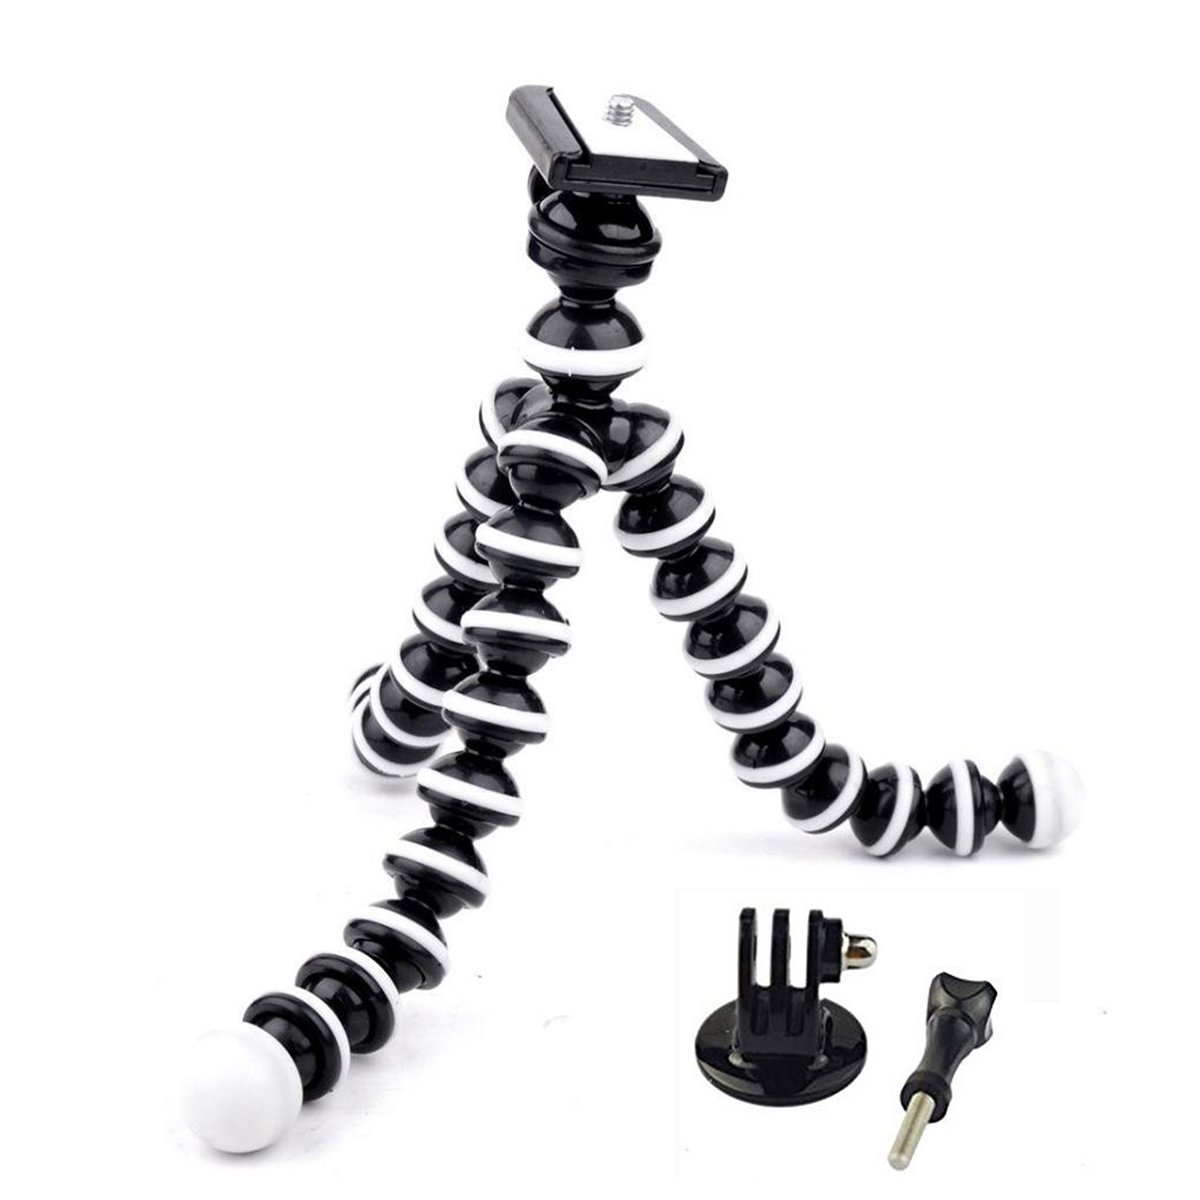 Eggsnow Flexible Octopus Tripod Stand for Gopro Mount Adapter Included-Black by Eggsnow